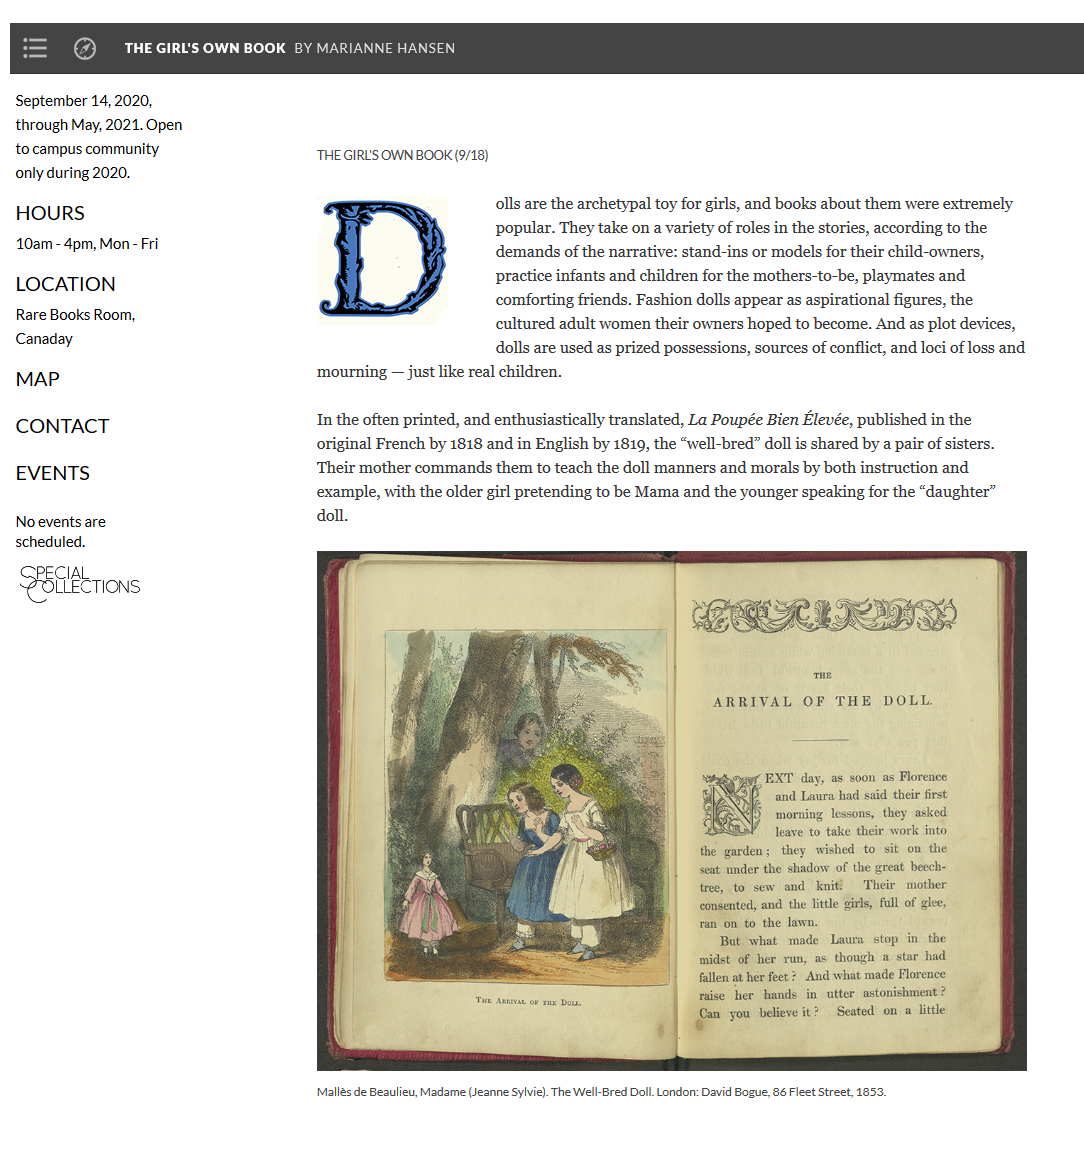 Screenshot of the online version the the exhibition, The Girl's Own Book